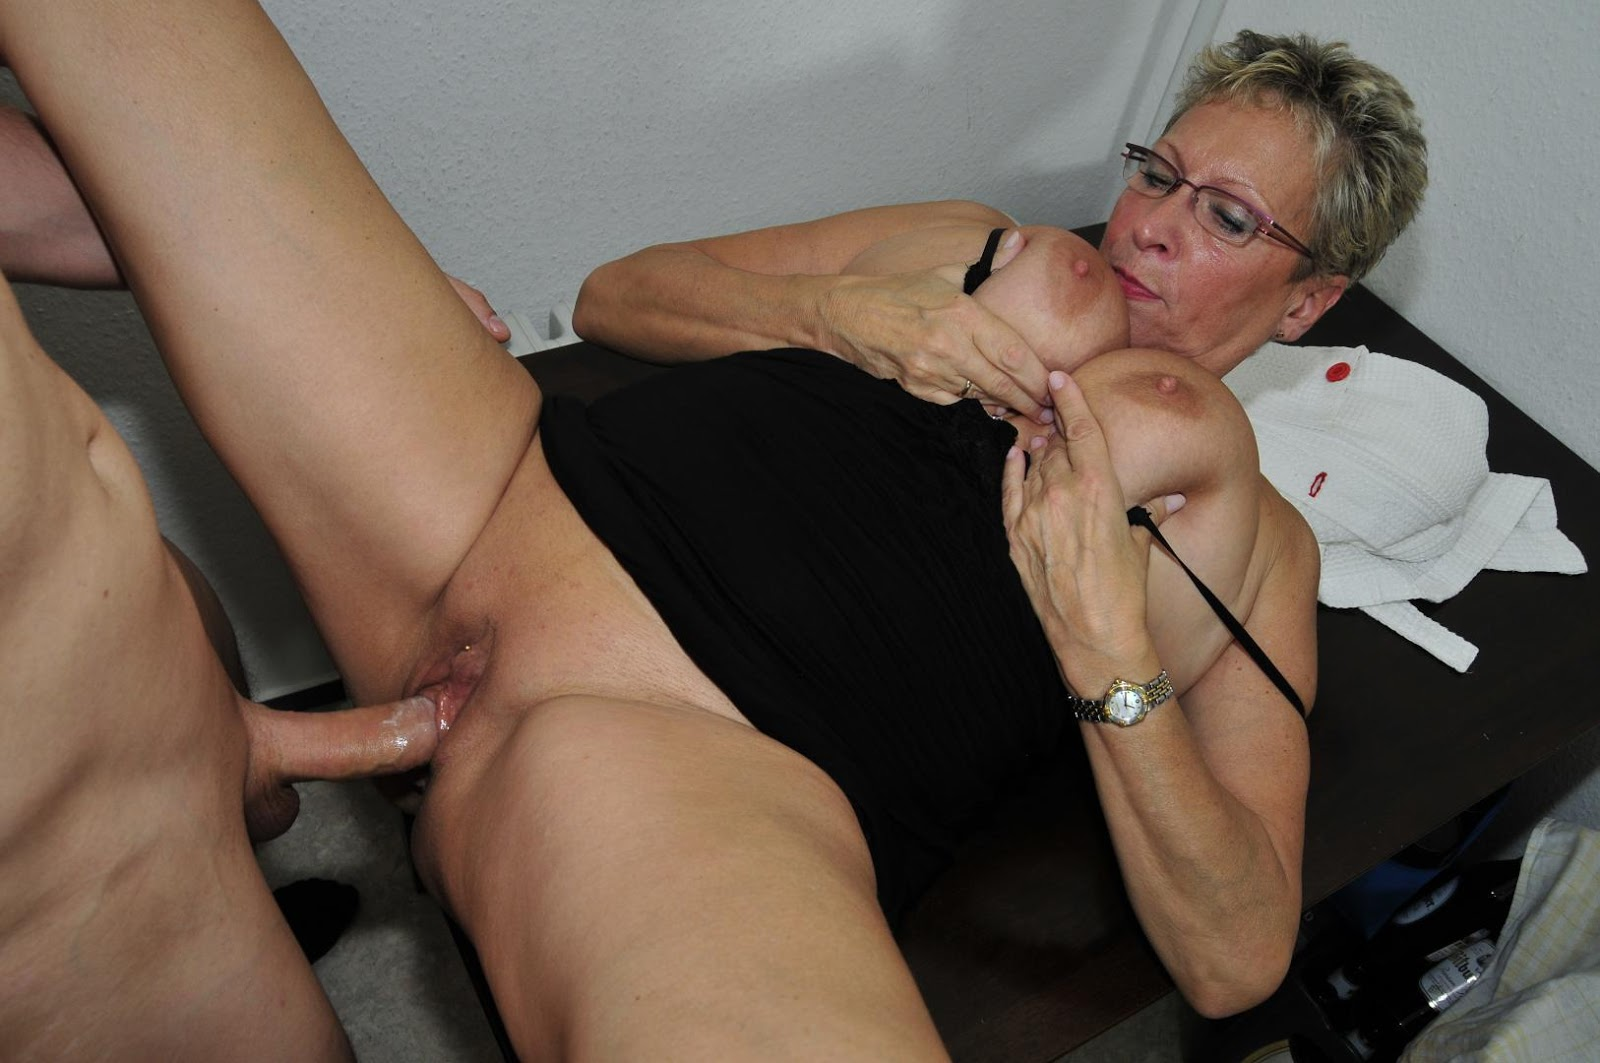 Archive Of Old Women Busty German Granny Sex Pics  Video-3390